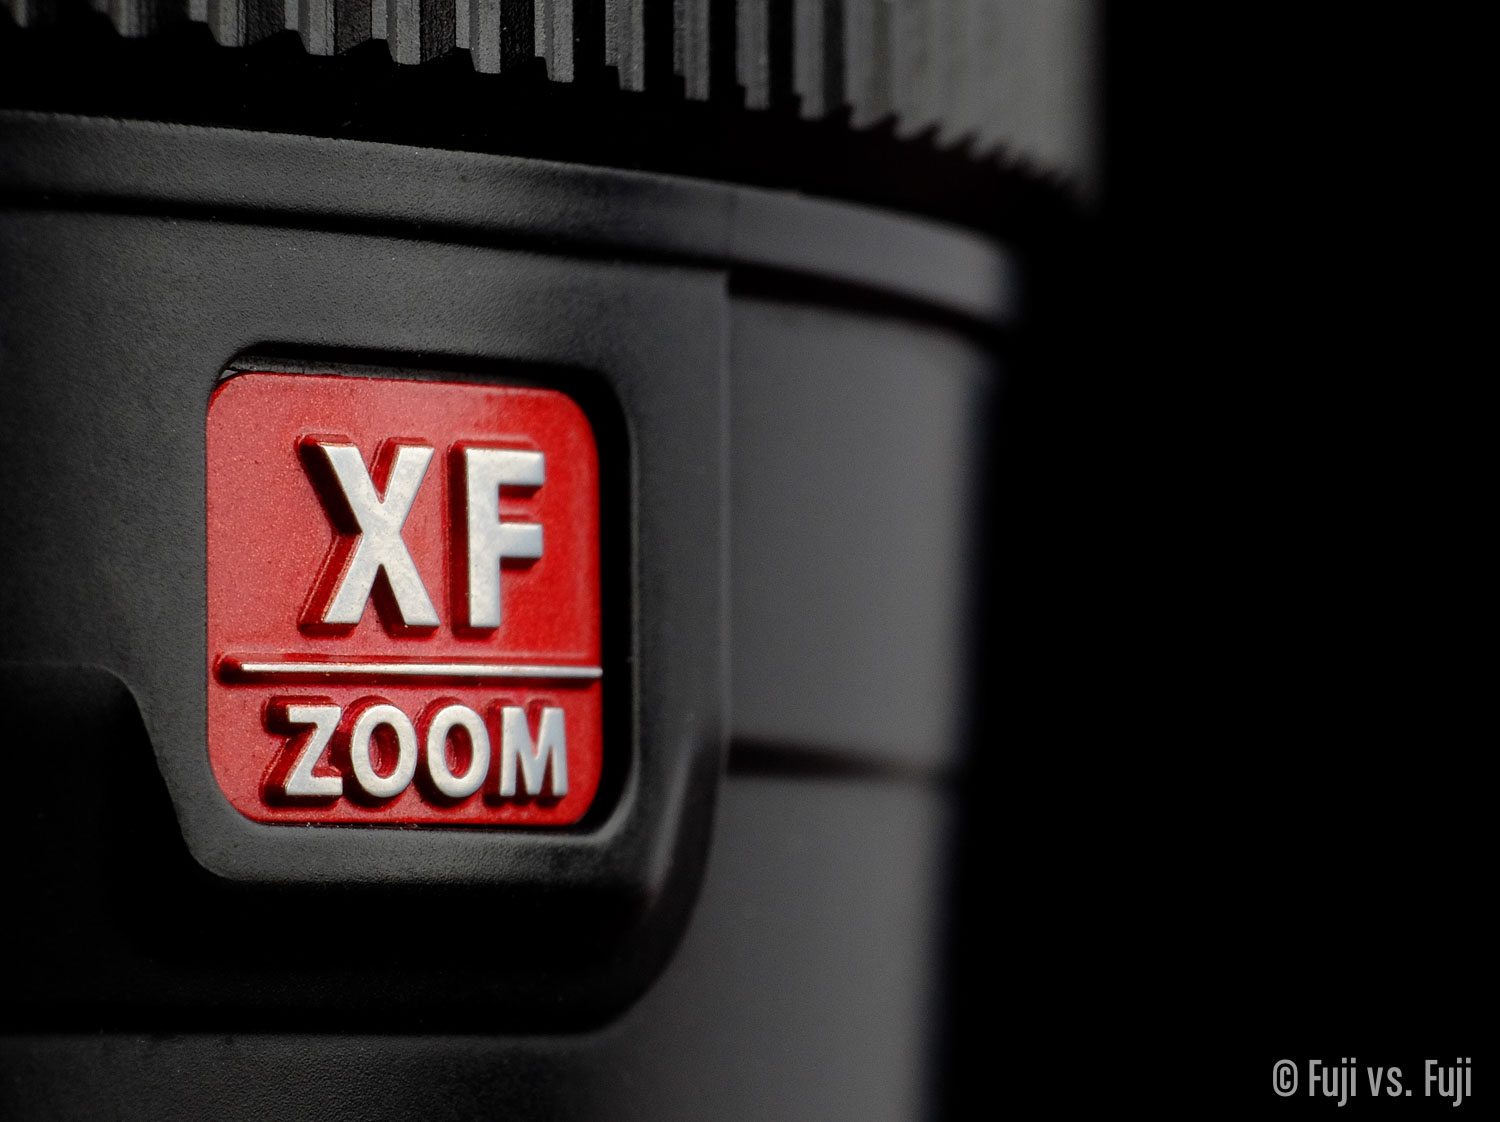 Fuji's red XF Zoom badge